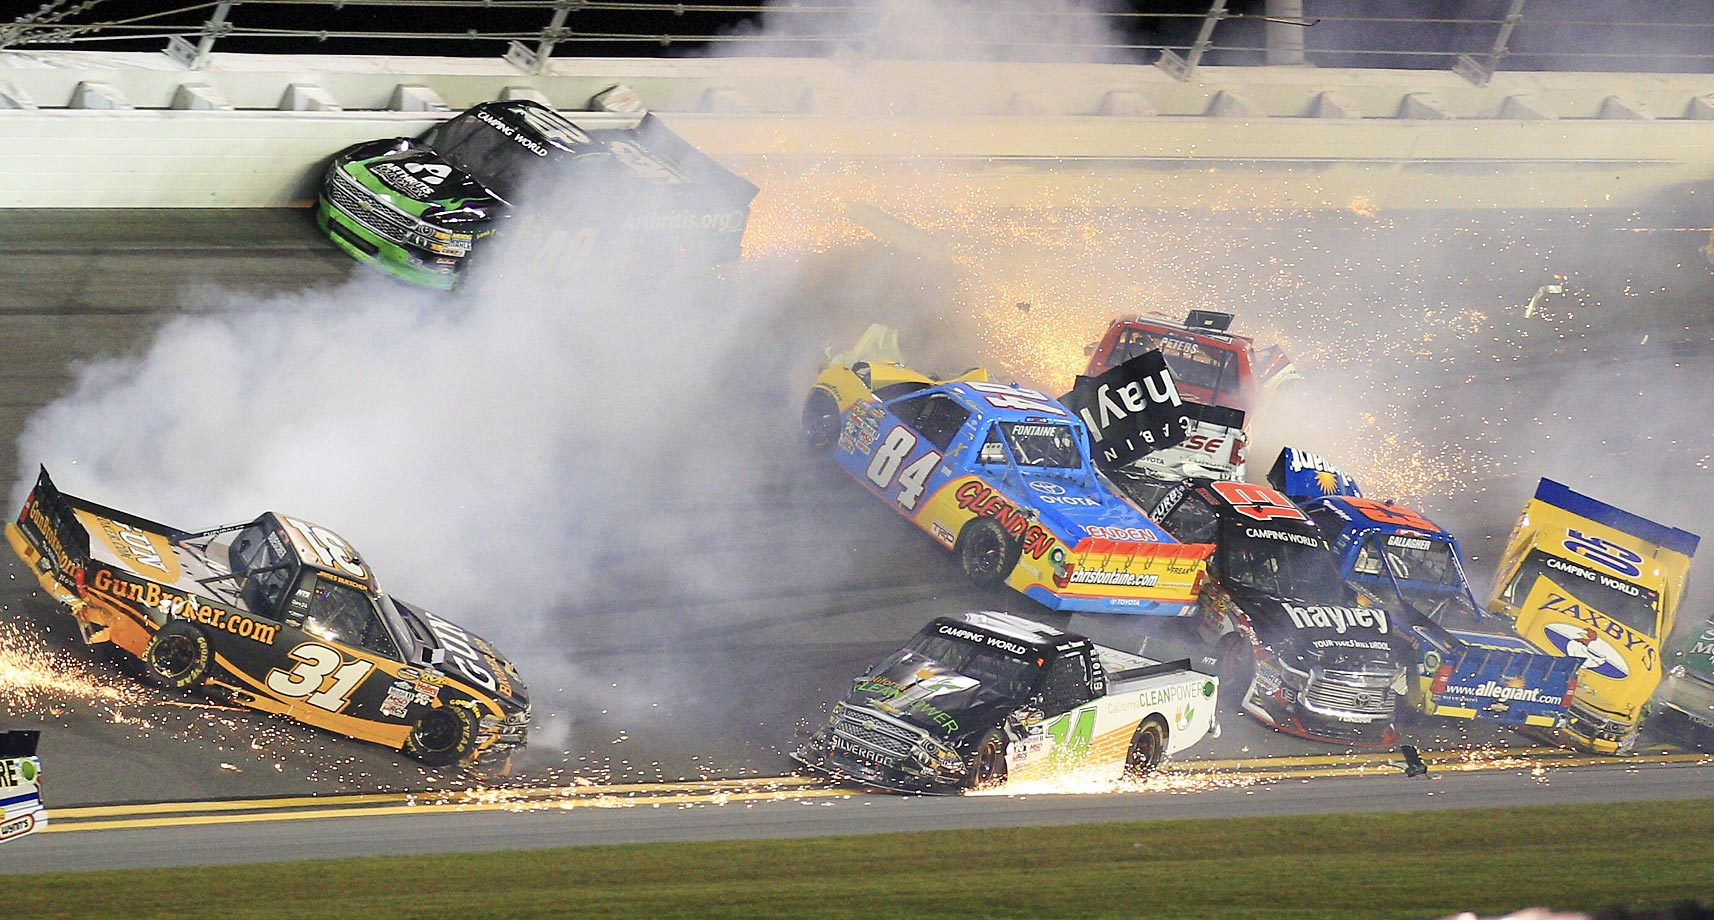 Drivers James Buescher (31), Todd Peck (40), Daniel Hemric (14), Chris Fontaine (84), Timothy Peters (17), Cameron Hayley (13), Spencer Gallagher (23), John Wes Townley (05), crash during the NASCAR Truck series race at Daytona International Speedway.